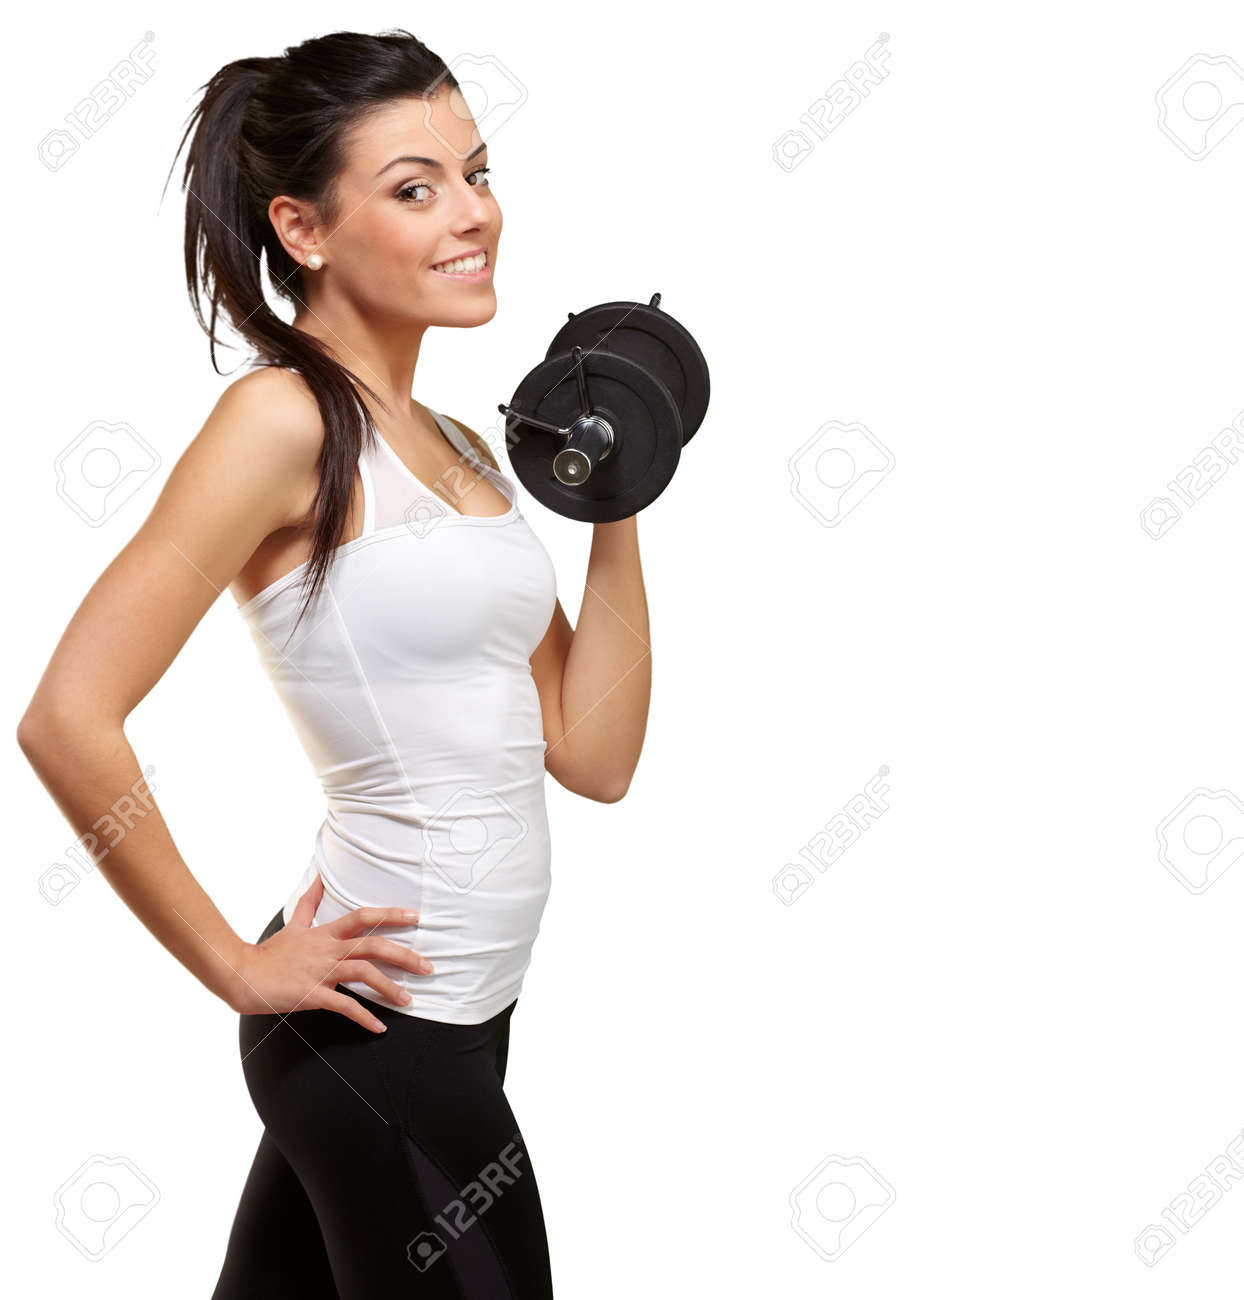 portrait of a young pretty woman holding weights and doing fitness against a white background Stock Photo - 13844733